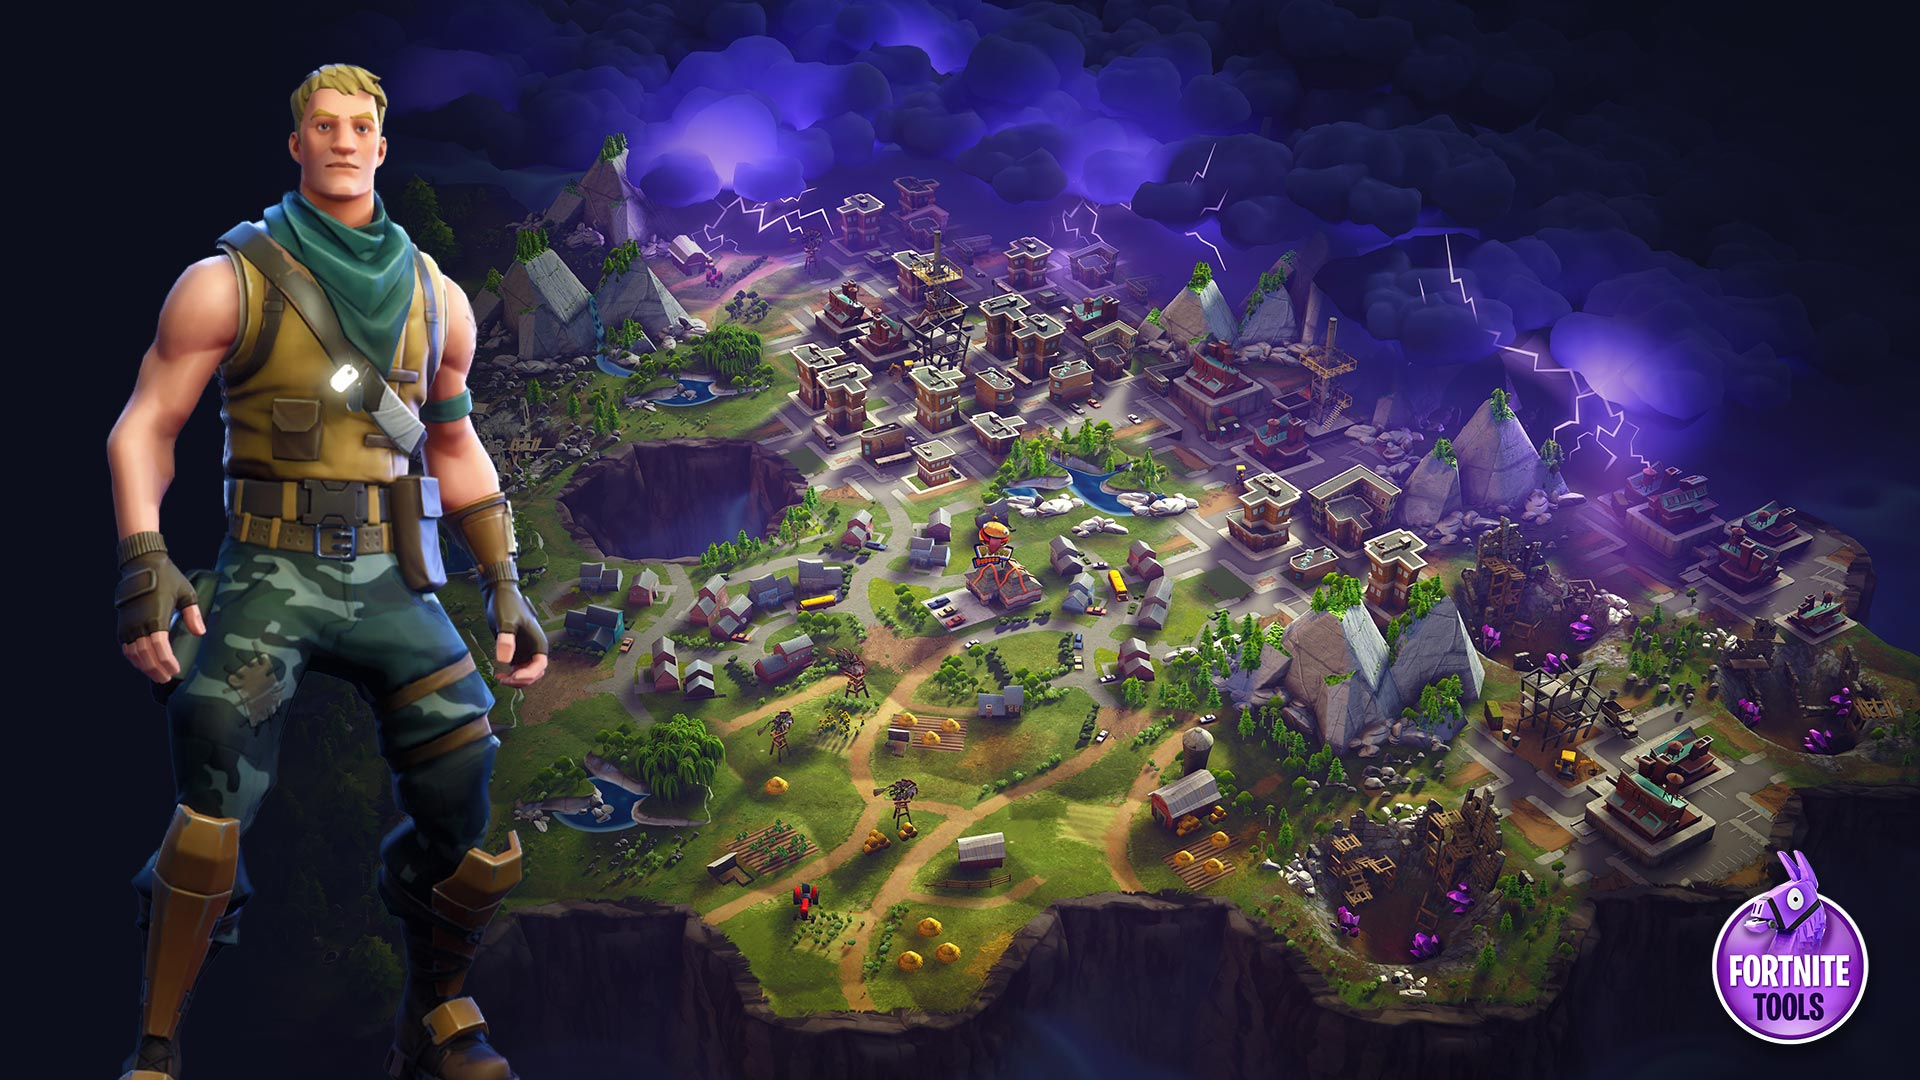 Fortnite ranger wallpaper - Fortnite save the world wallpaper ...